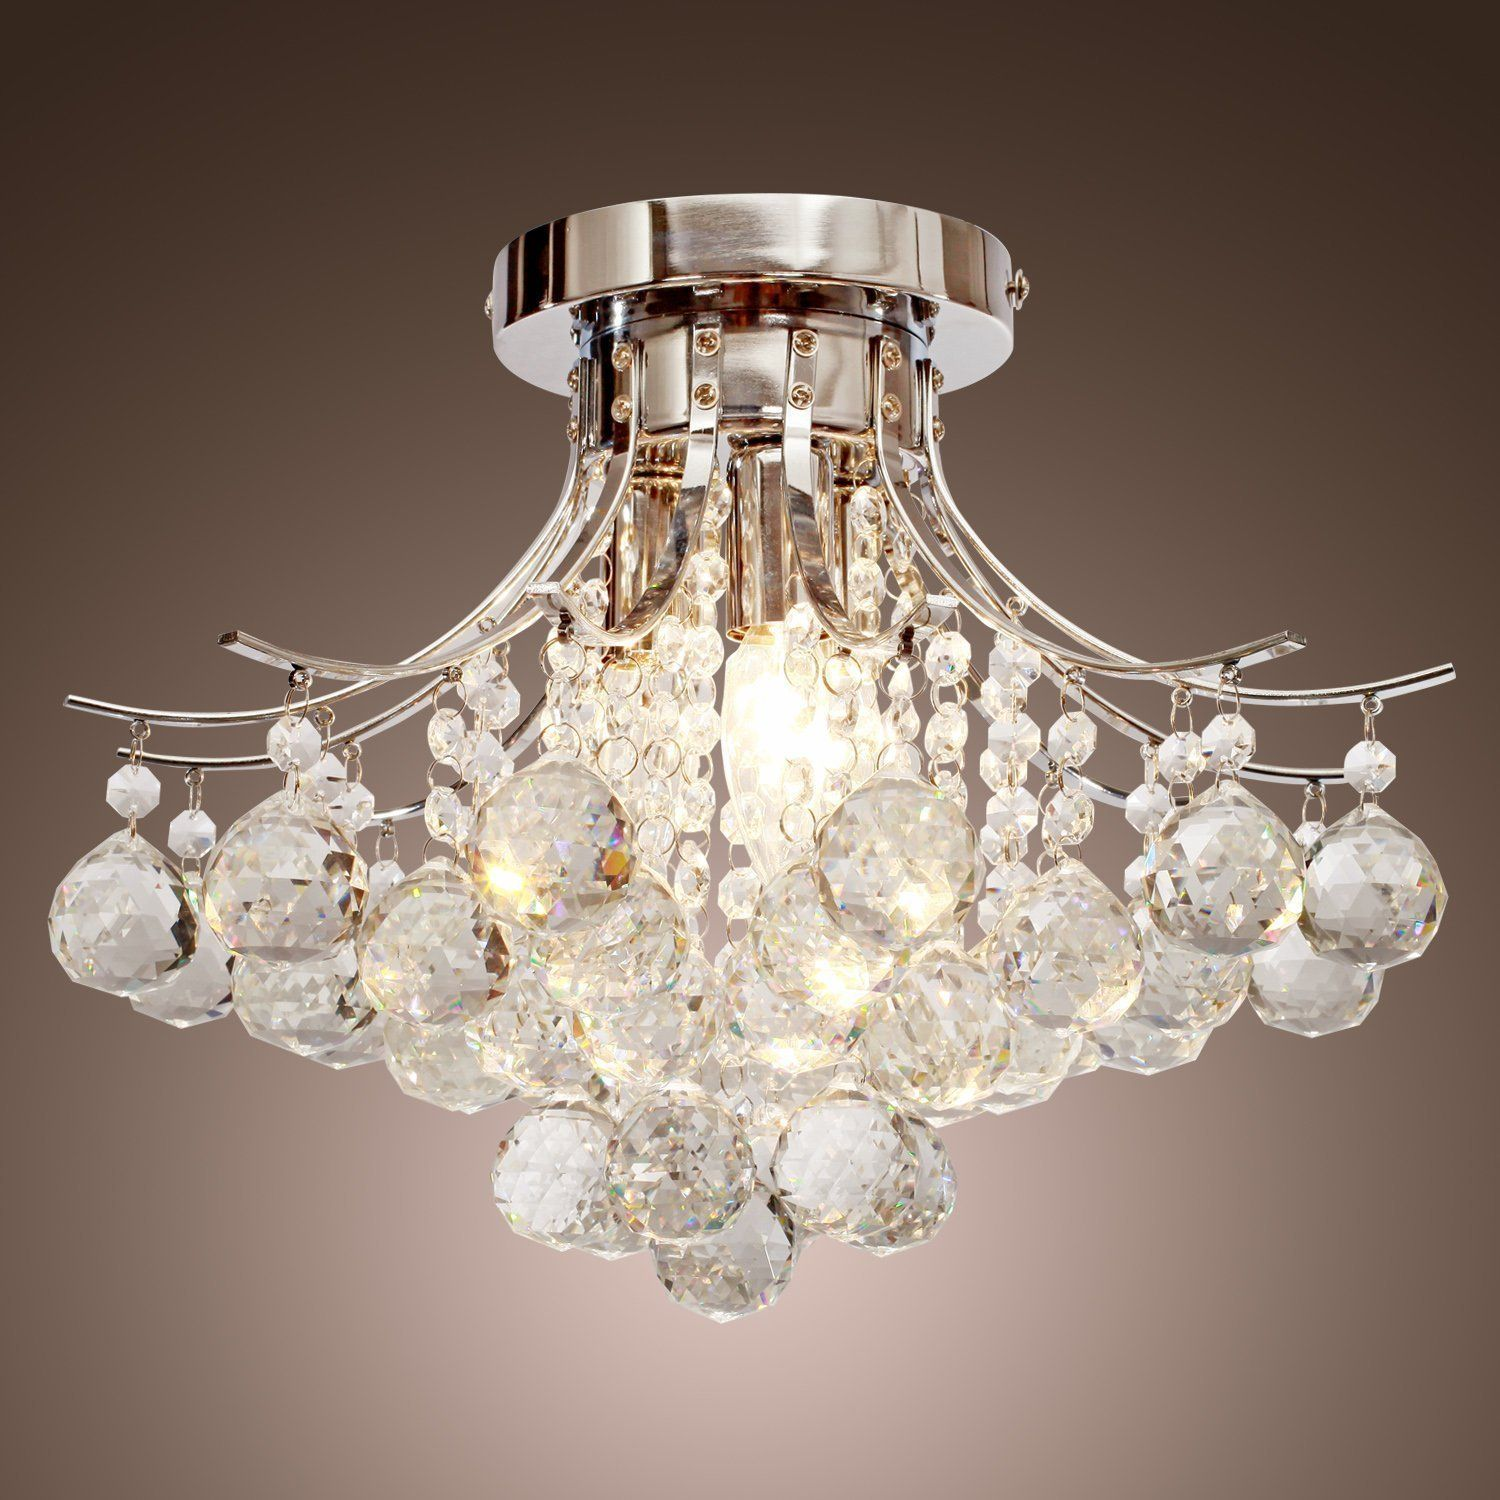 Amazon.com - Chrome Finish Crystal Chandelier with 3 Lights, Mini ...